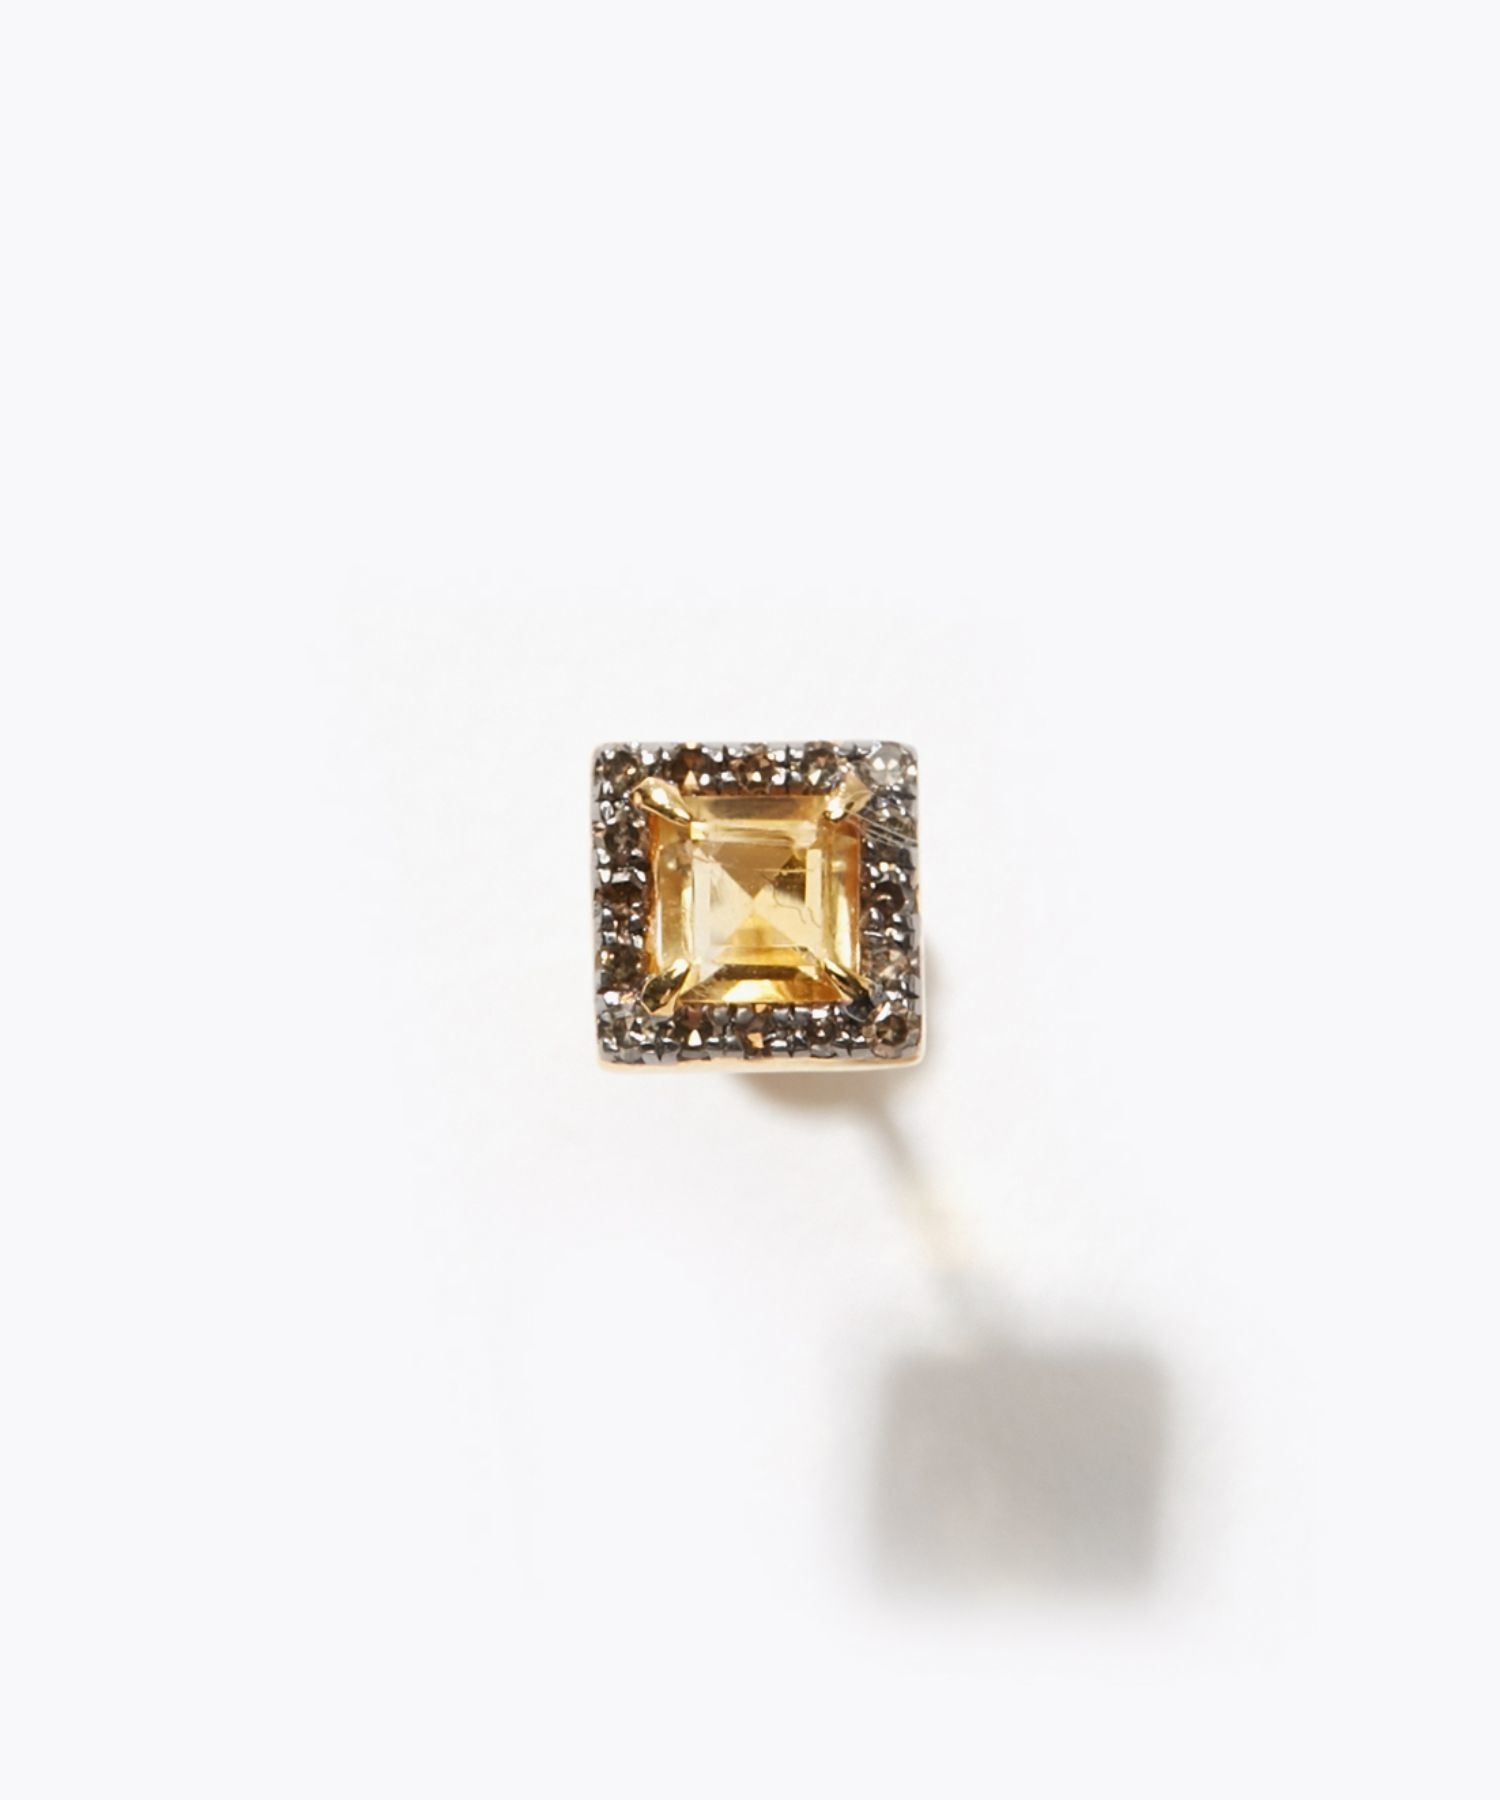 [elafonisi] square citrine pave diamond stud pierced earring